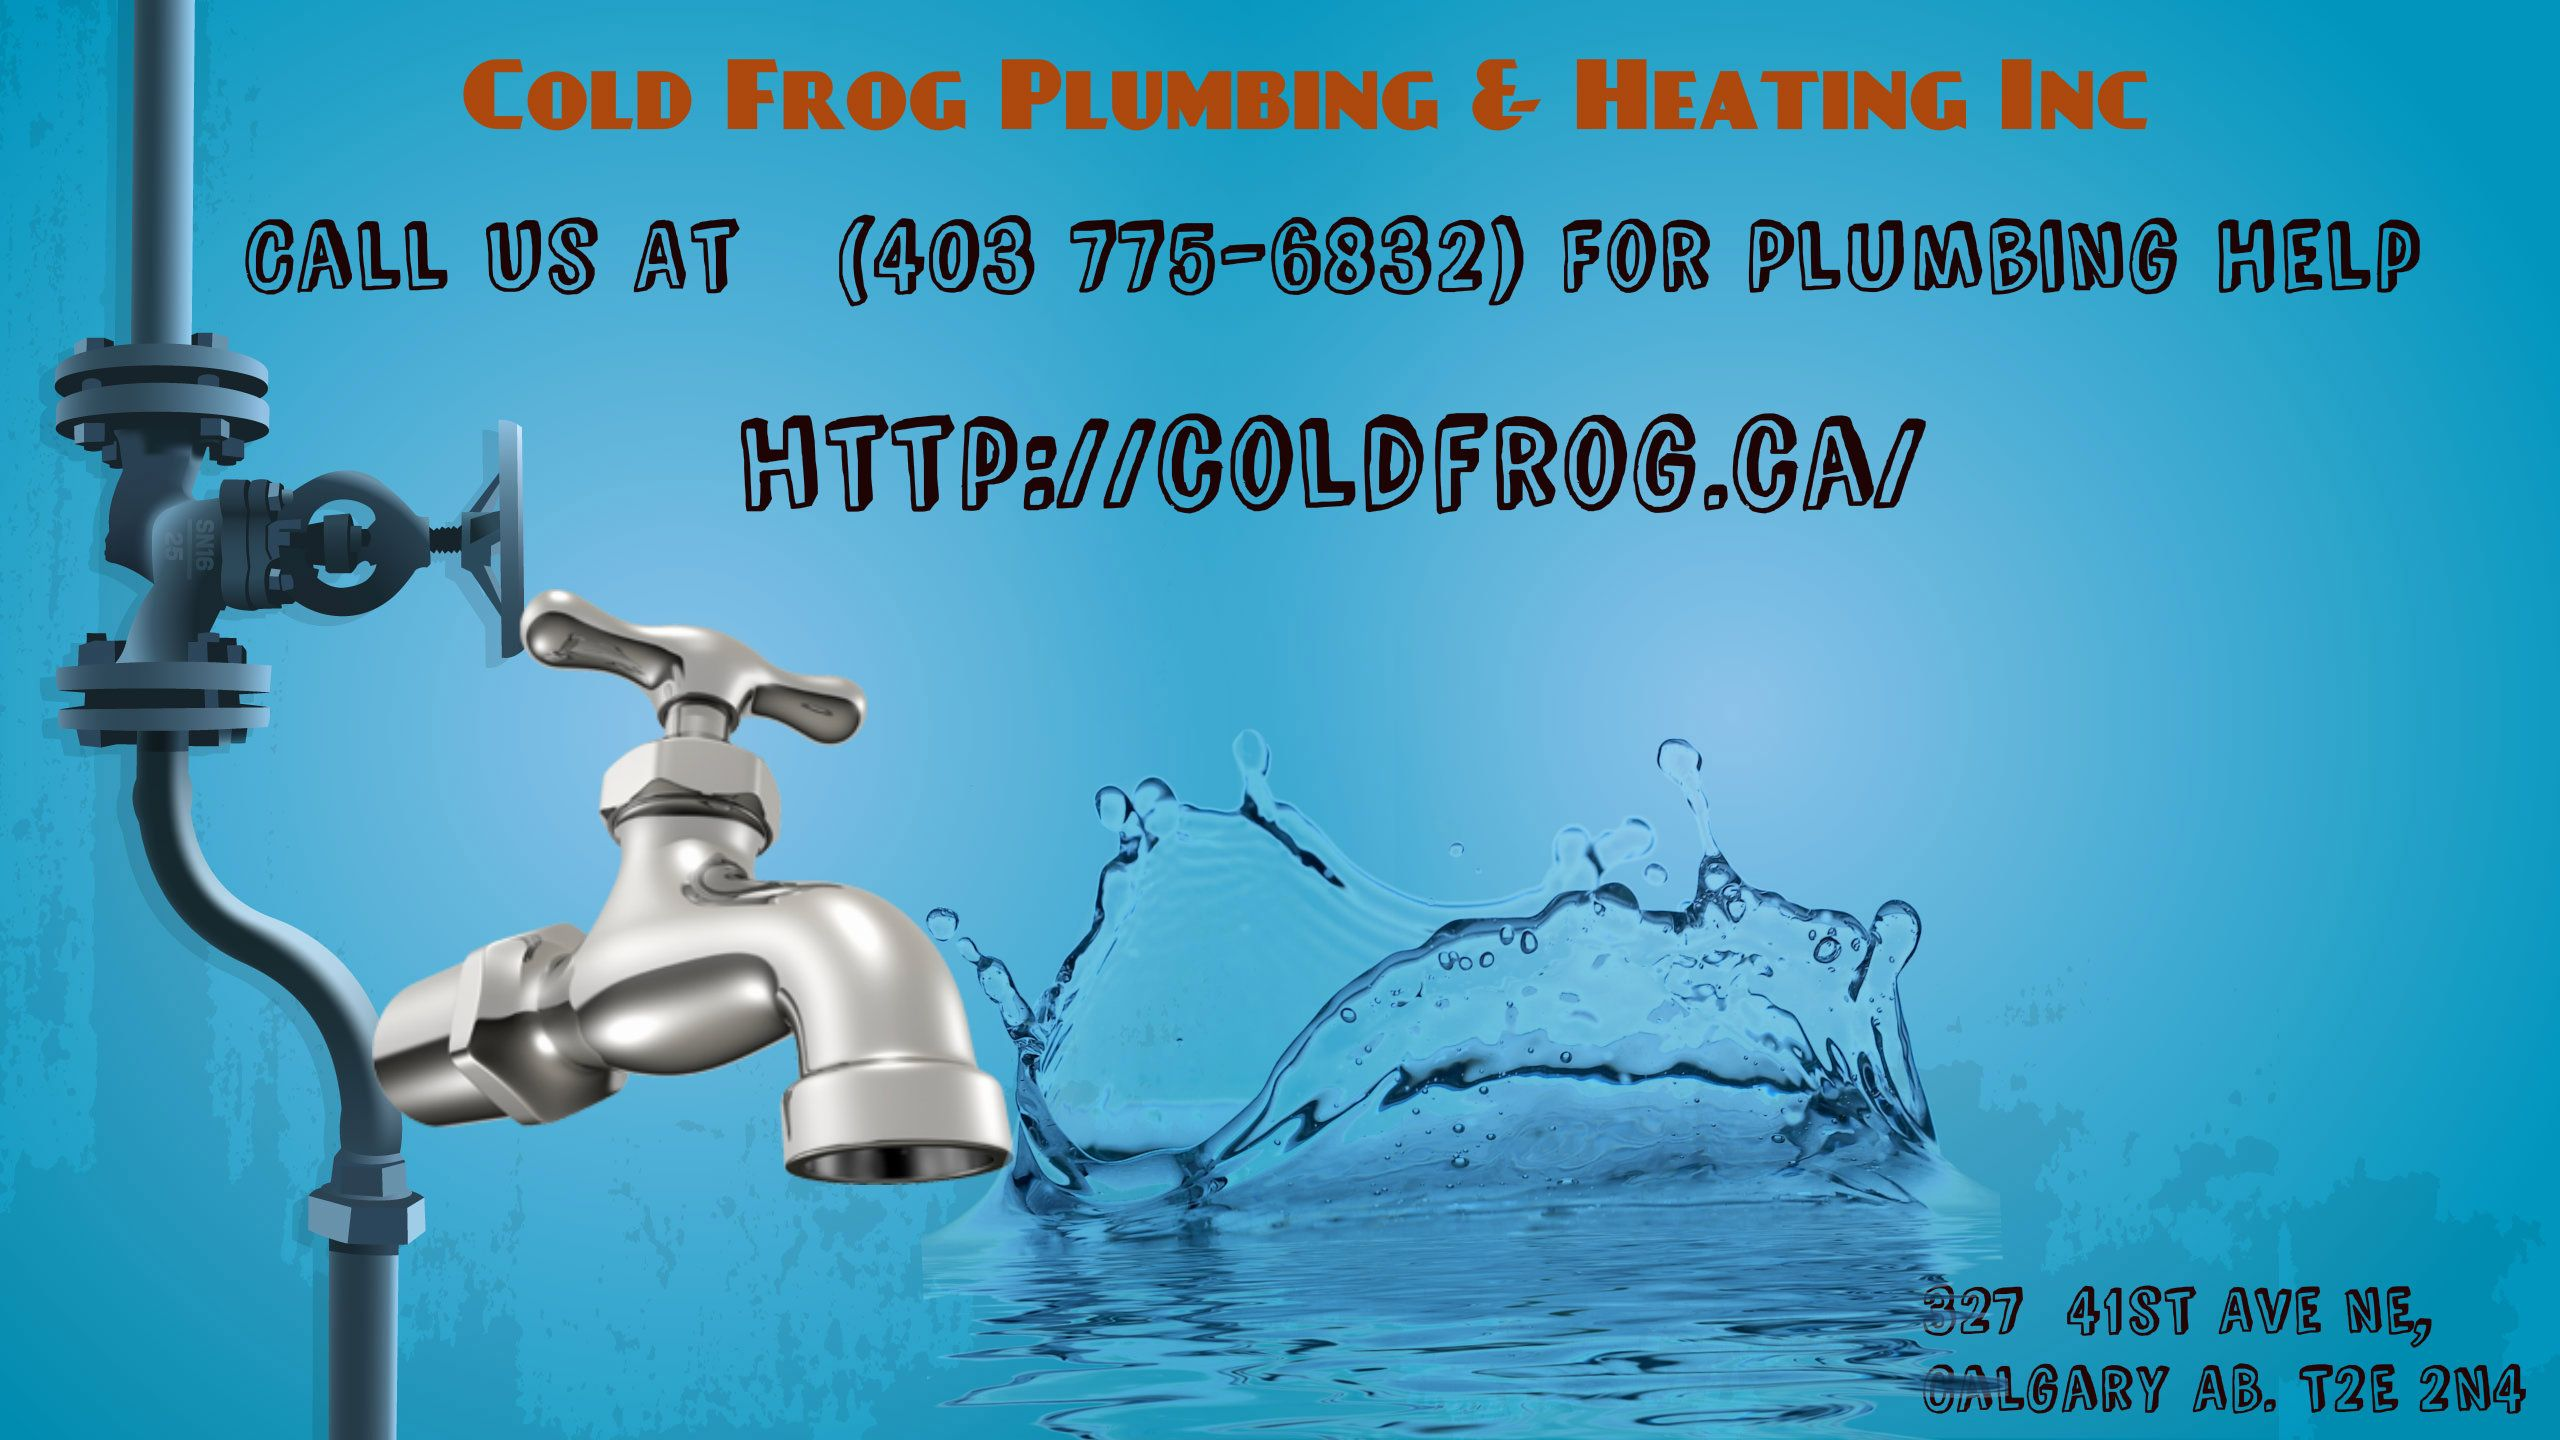 Cold Frog Offers Complete Plumbing Heating Solutions In Calgary With Images Plumbing Emergency Heating Services Water Heater Repair